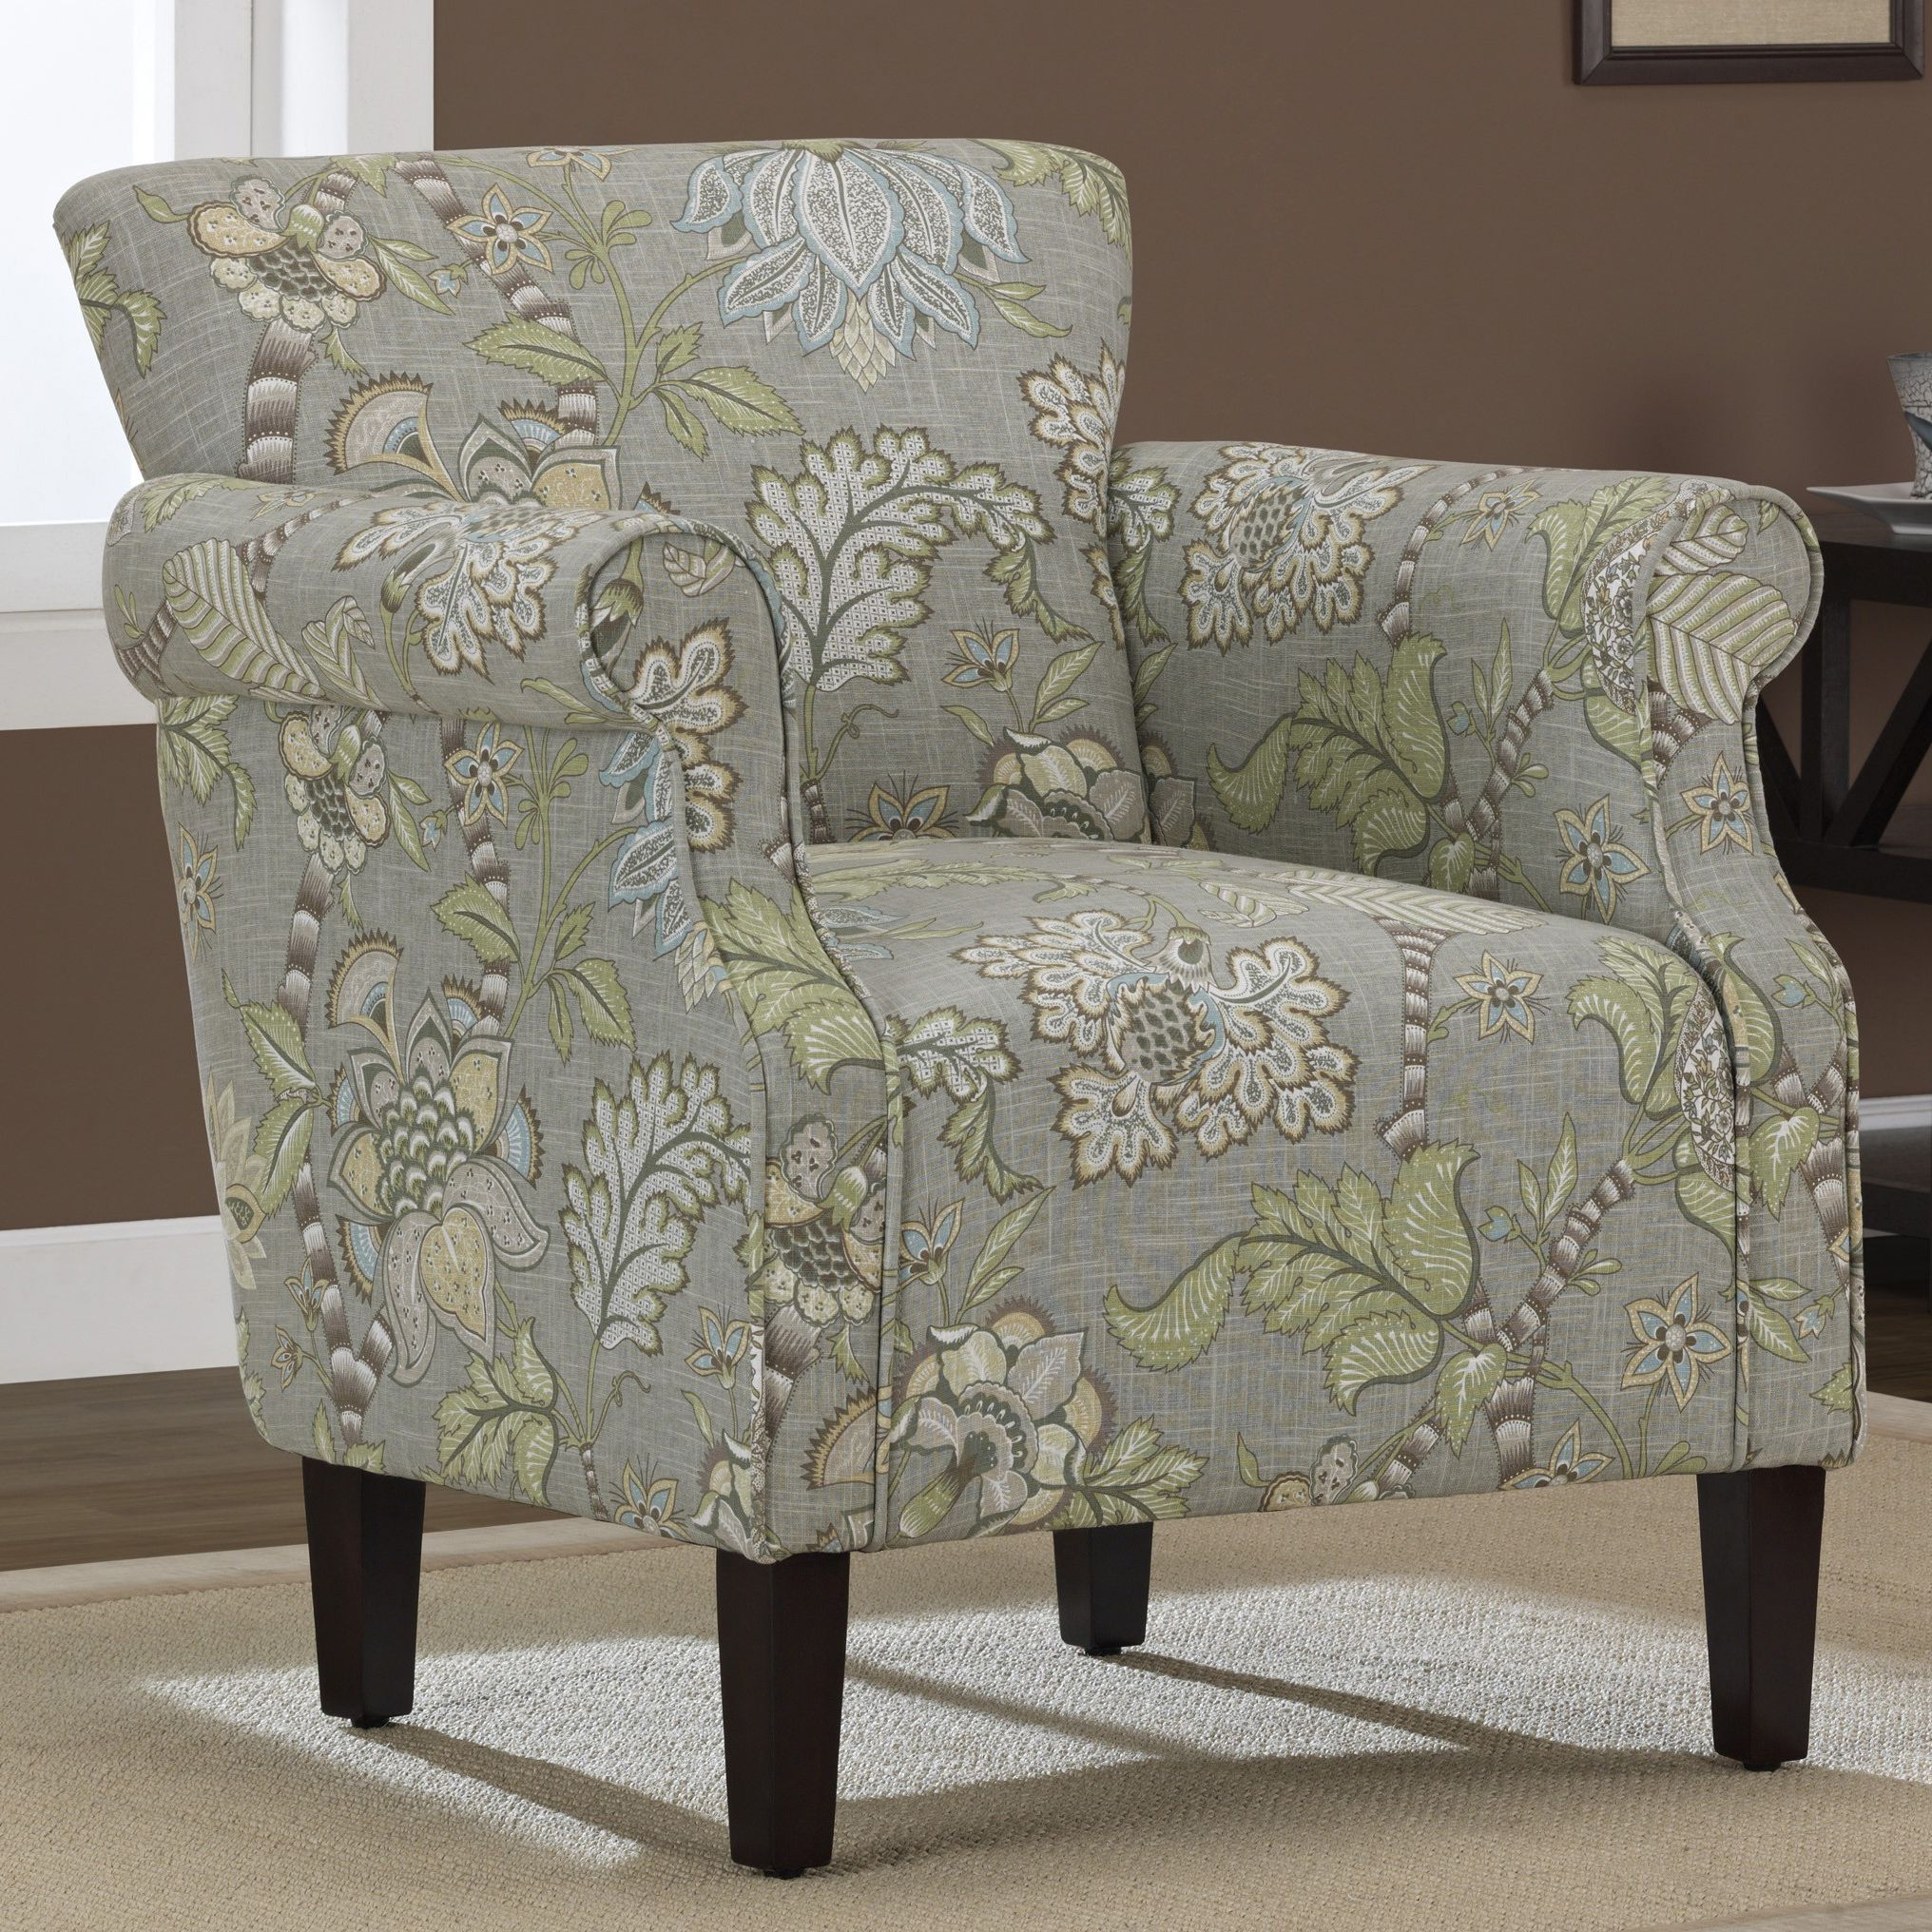 Lime Green Accent Chair Pretty Upholstered Chair I Would Love To Have In My Lime